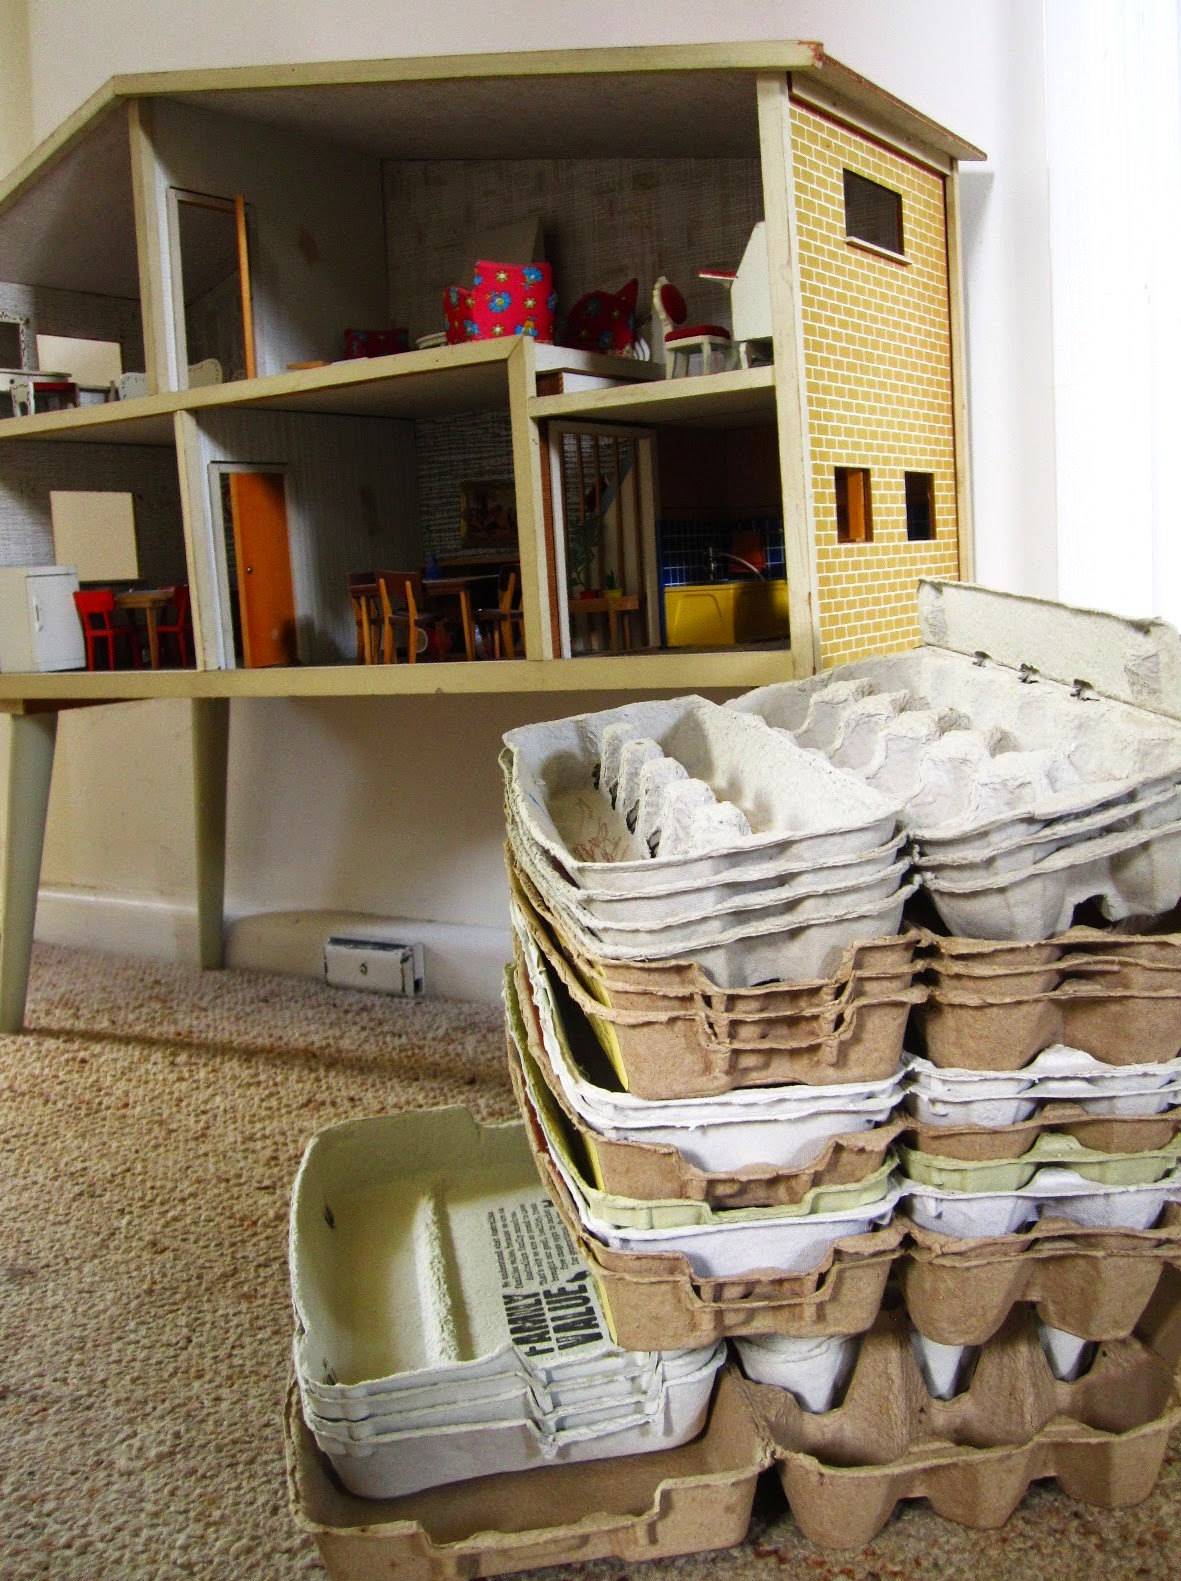 A stack of empty egg cartons in front of a vintage Lundby dolls' house.